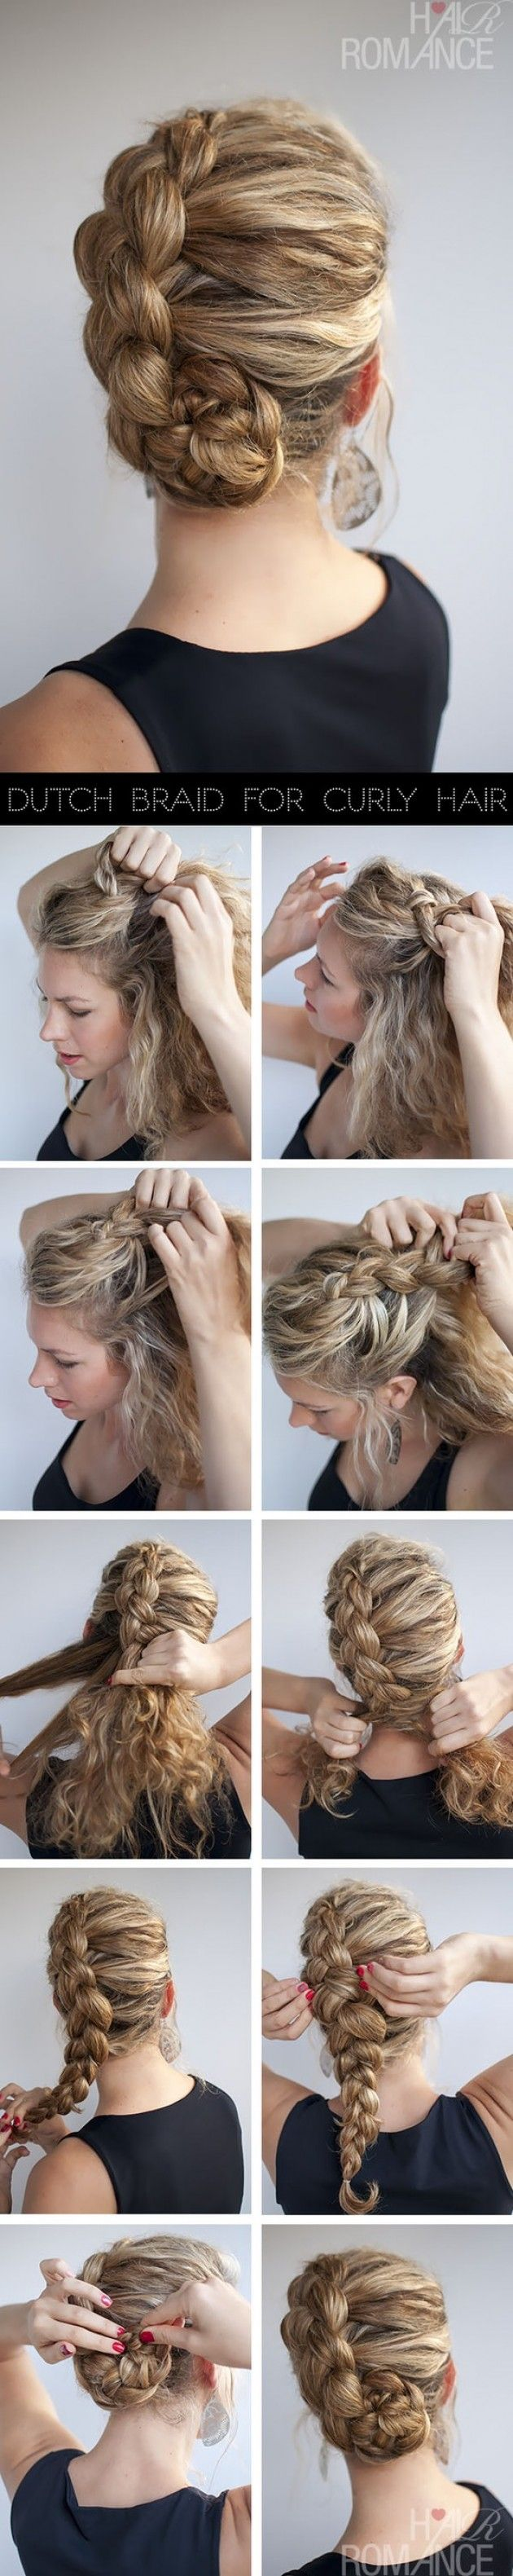 185 best APOSTOLIC HAIRSTYLES images on Pinterest